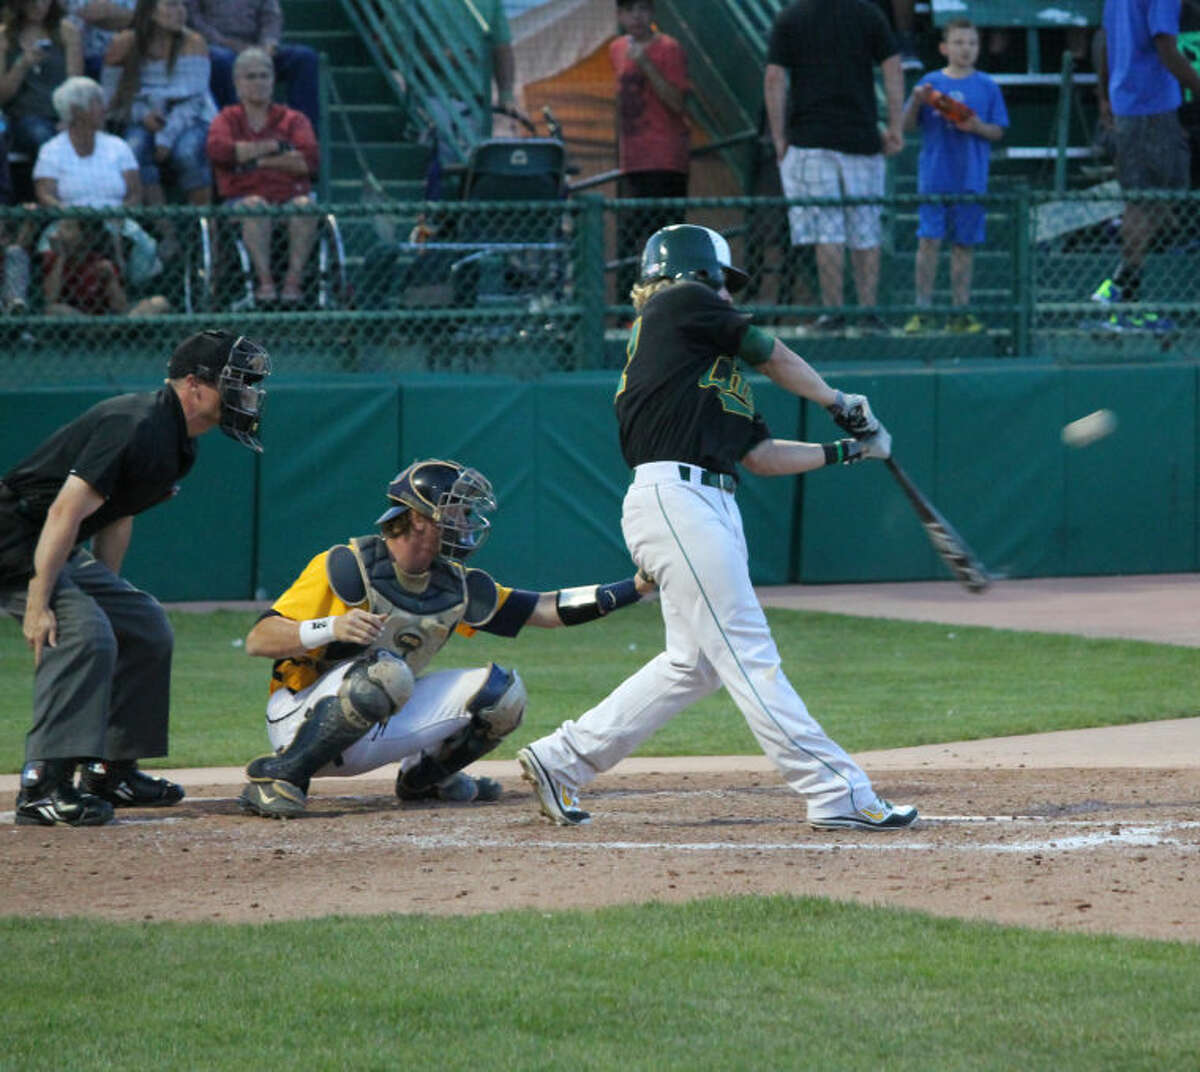 Midland College's Ethan Kohnle hits a double in the third inning against Central Alabama on Monday at Sam Suplizio Field in Grand Junction, Colo. Buddy Brown/Special to the MRT